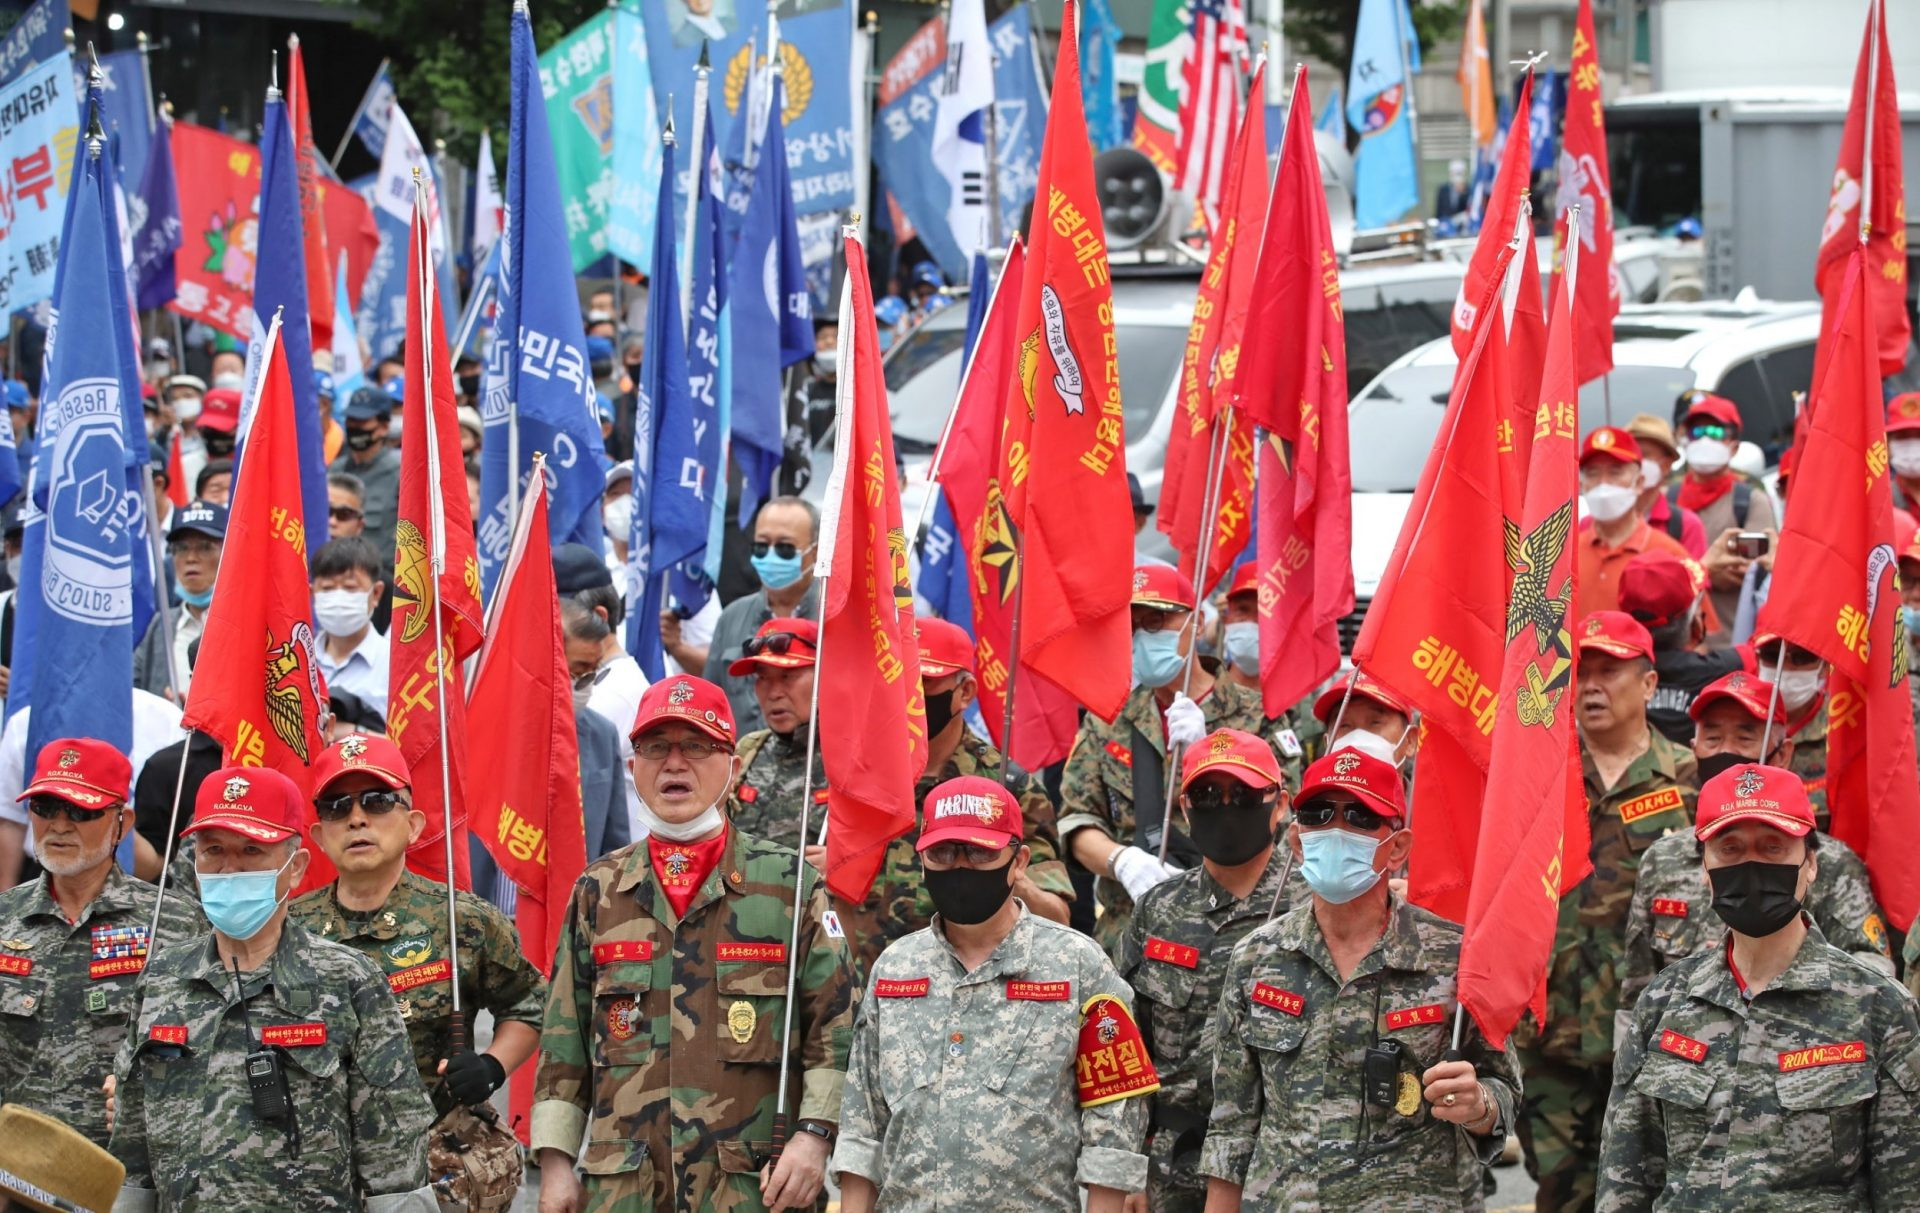 korean war 70th anniversary how did it start what happened and how is it being marked today 1 - EU Diplomat Seeks Tighter Bond With Indonesia